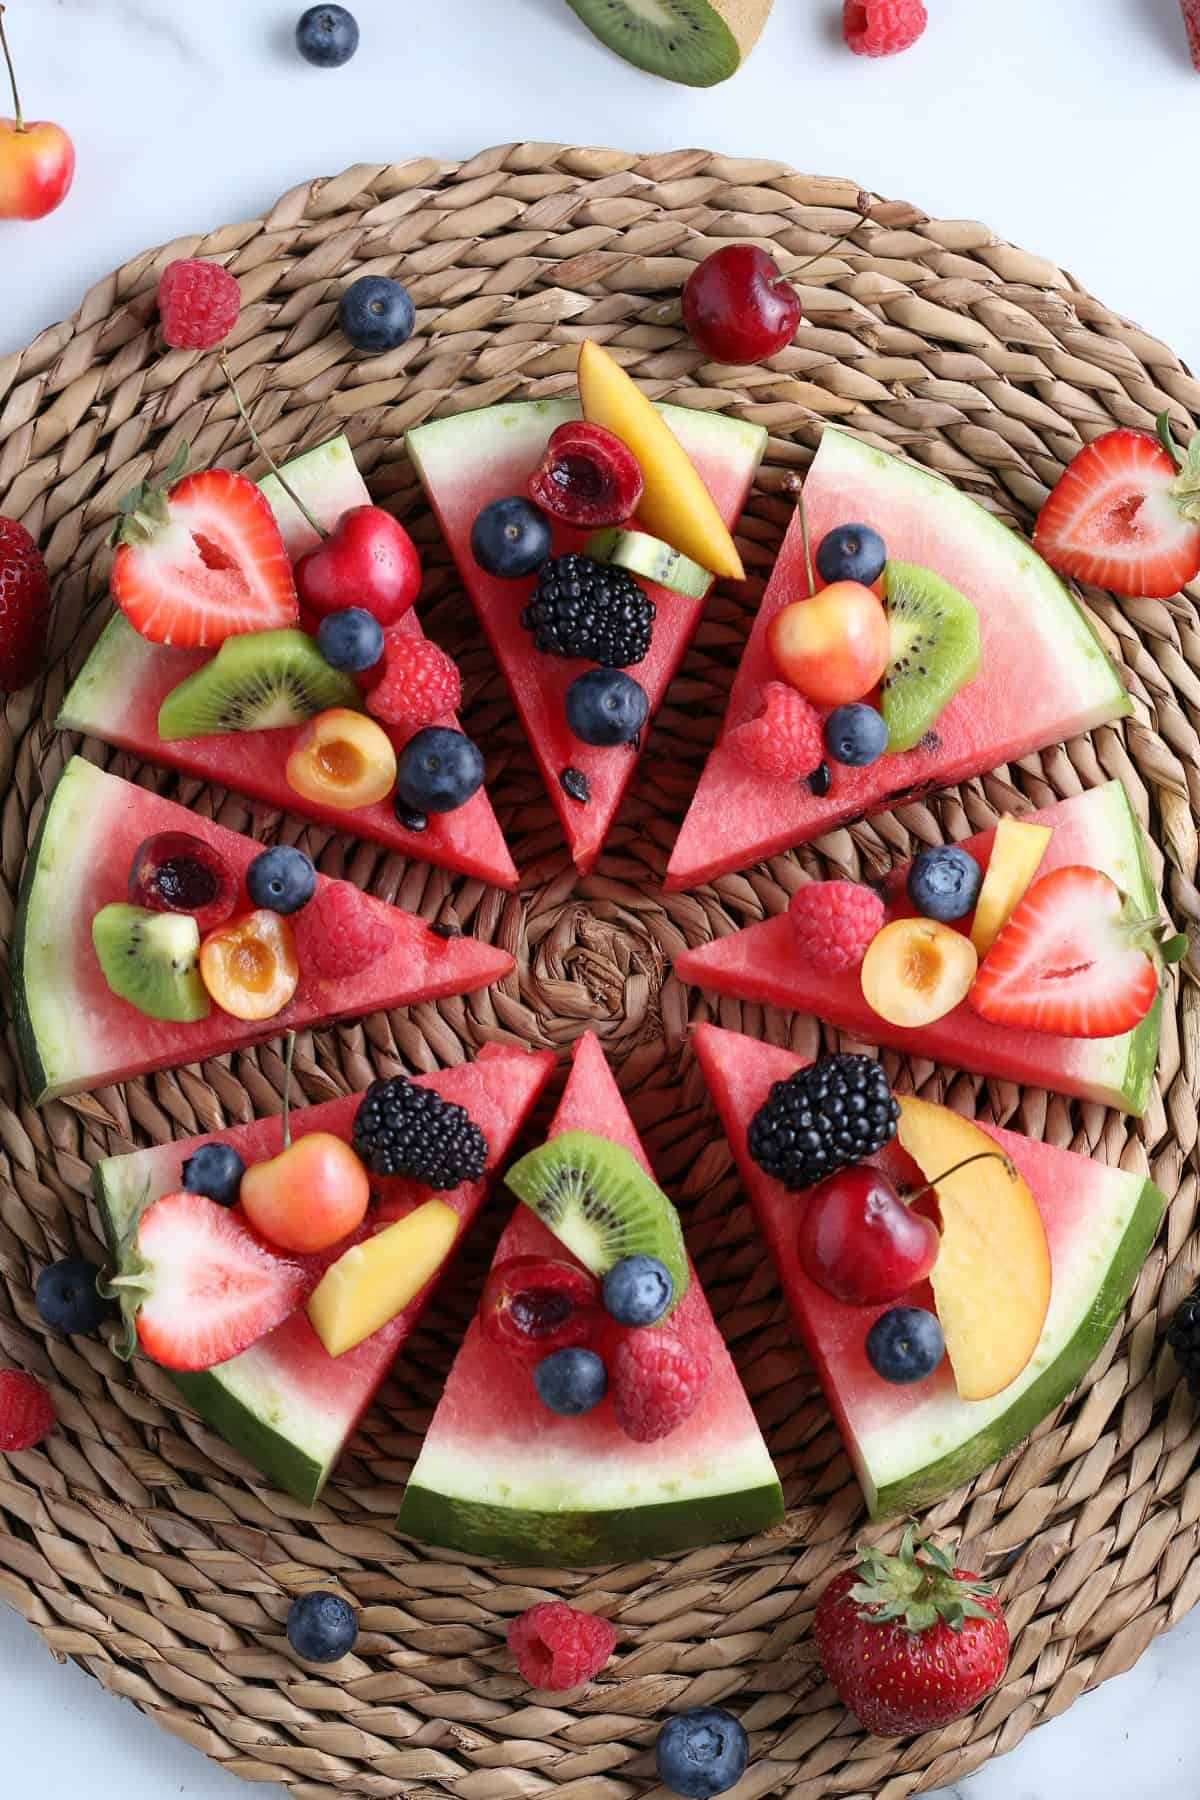 Overhead of sliced red melon round covered with berries and more and then sliced into wedges for serving.